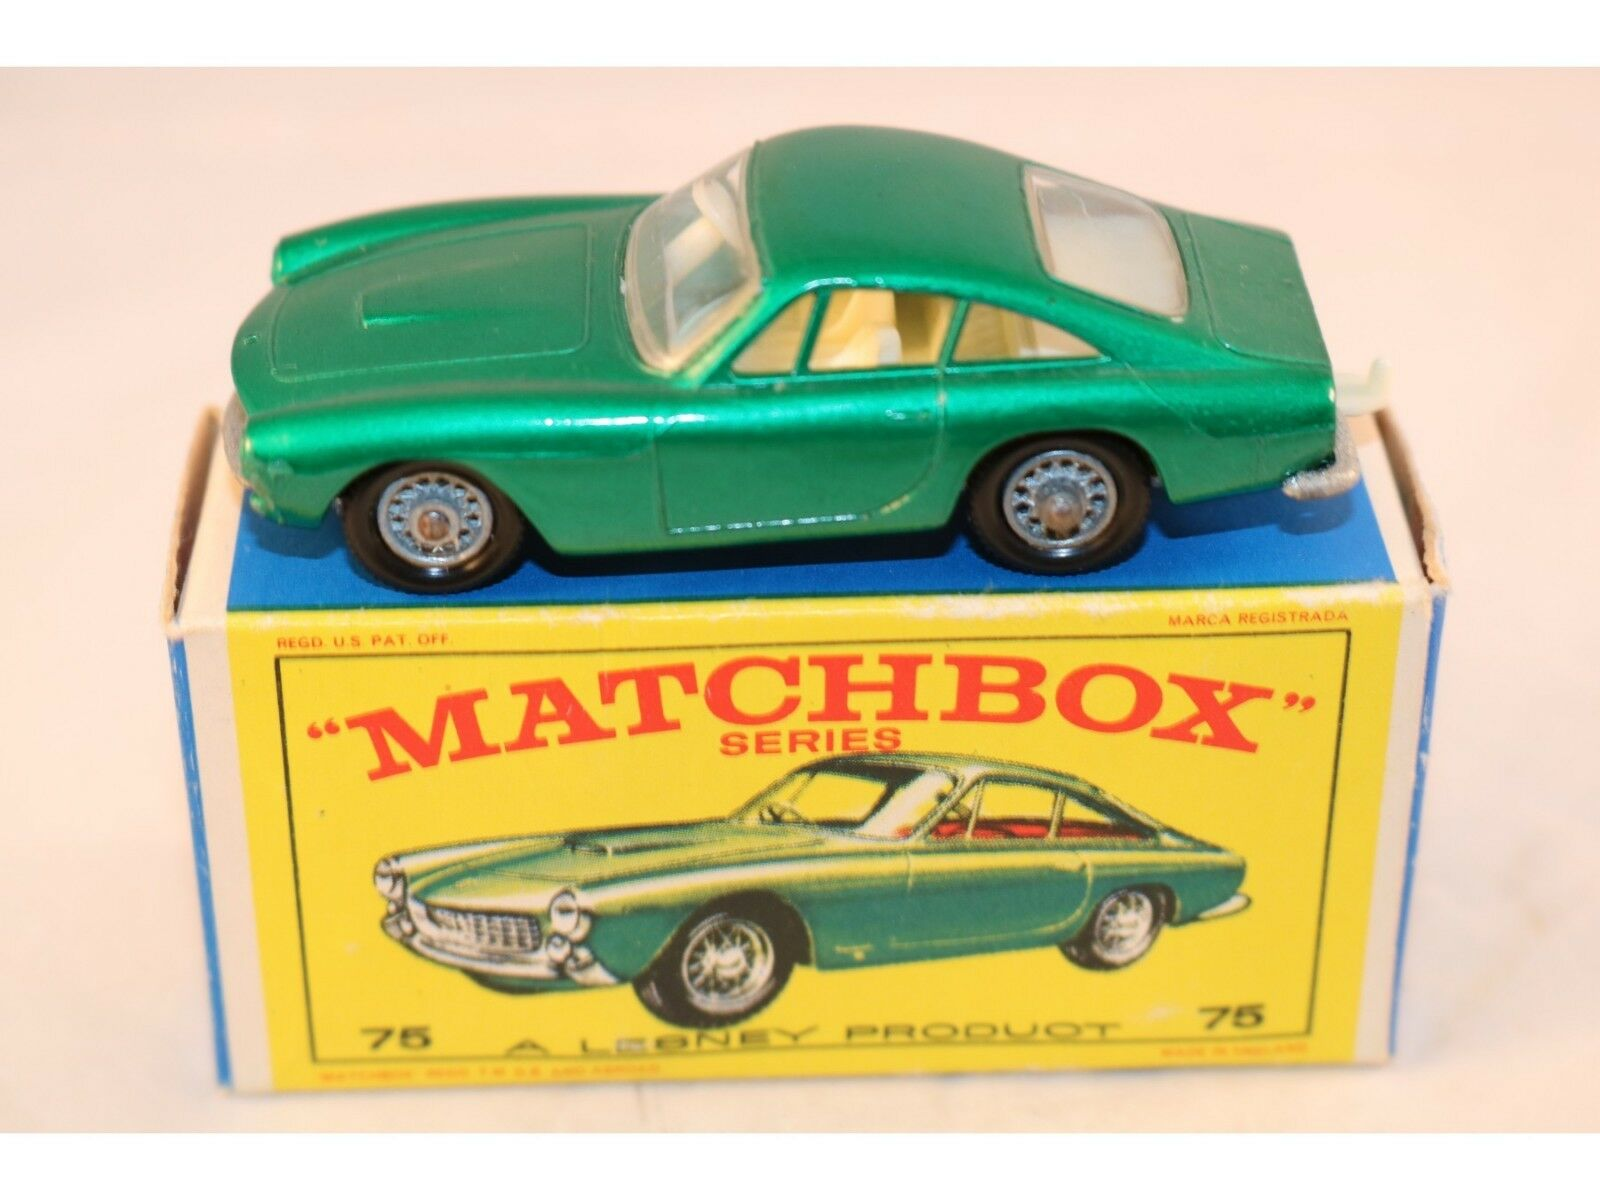 Matchbox lesney 75 ferrari berlinetta grüner minze in der box